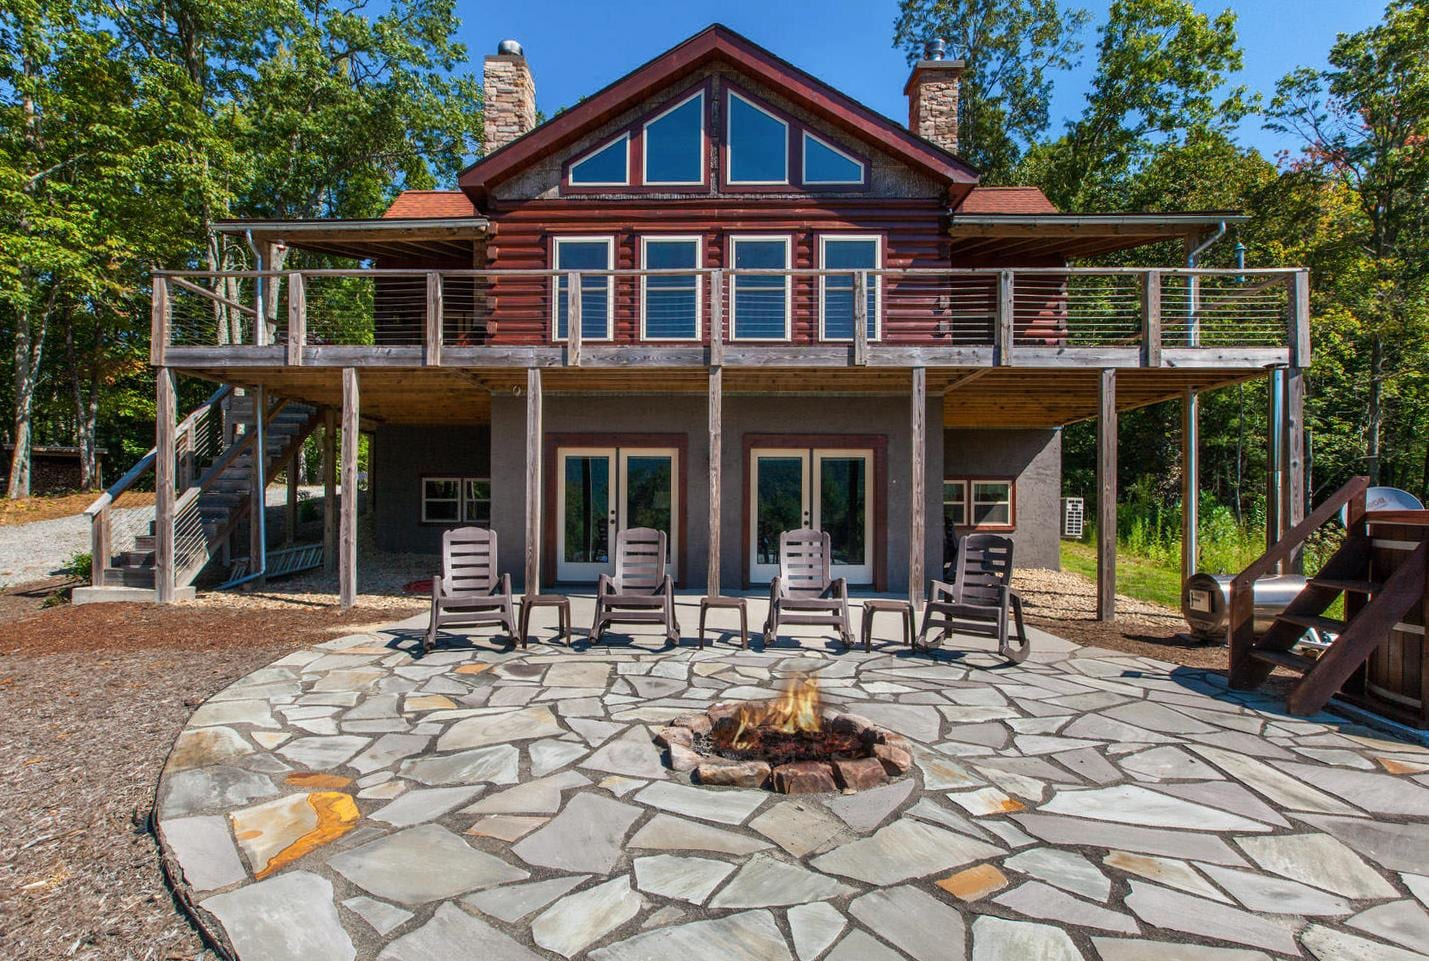 This spacious cabin retreat features an expansive deck leading to porches facing tremendous mountain views.